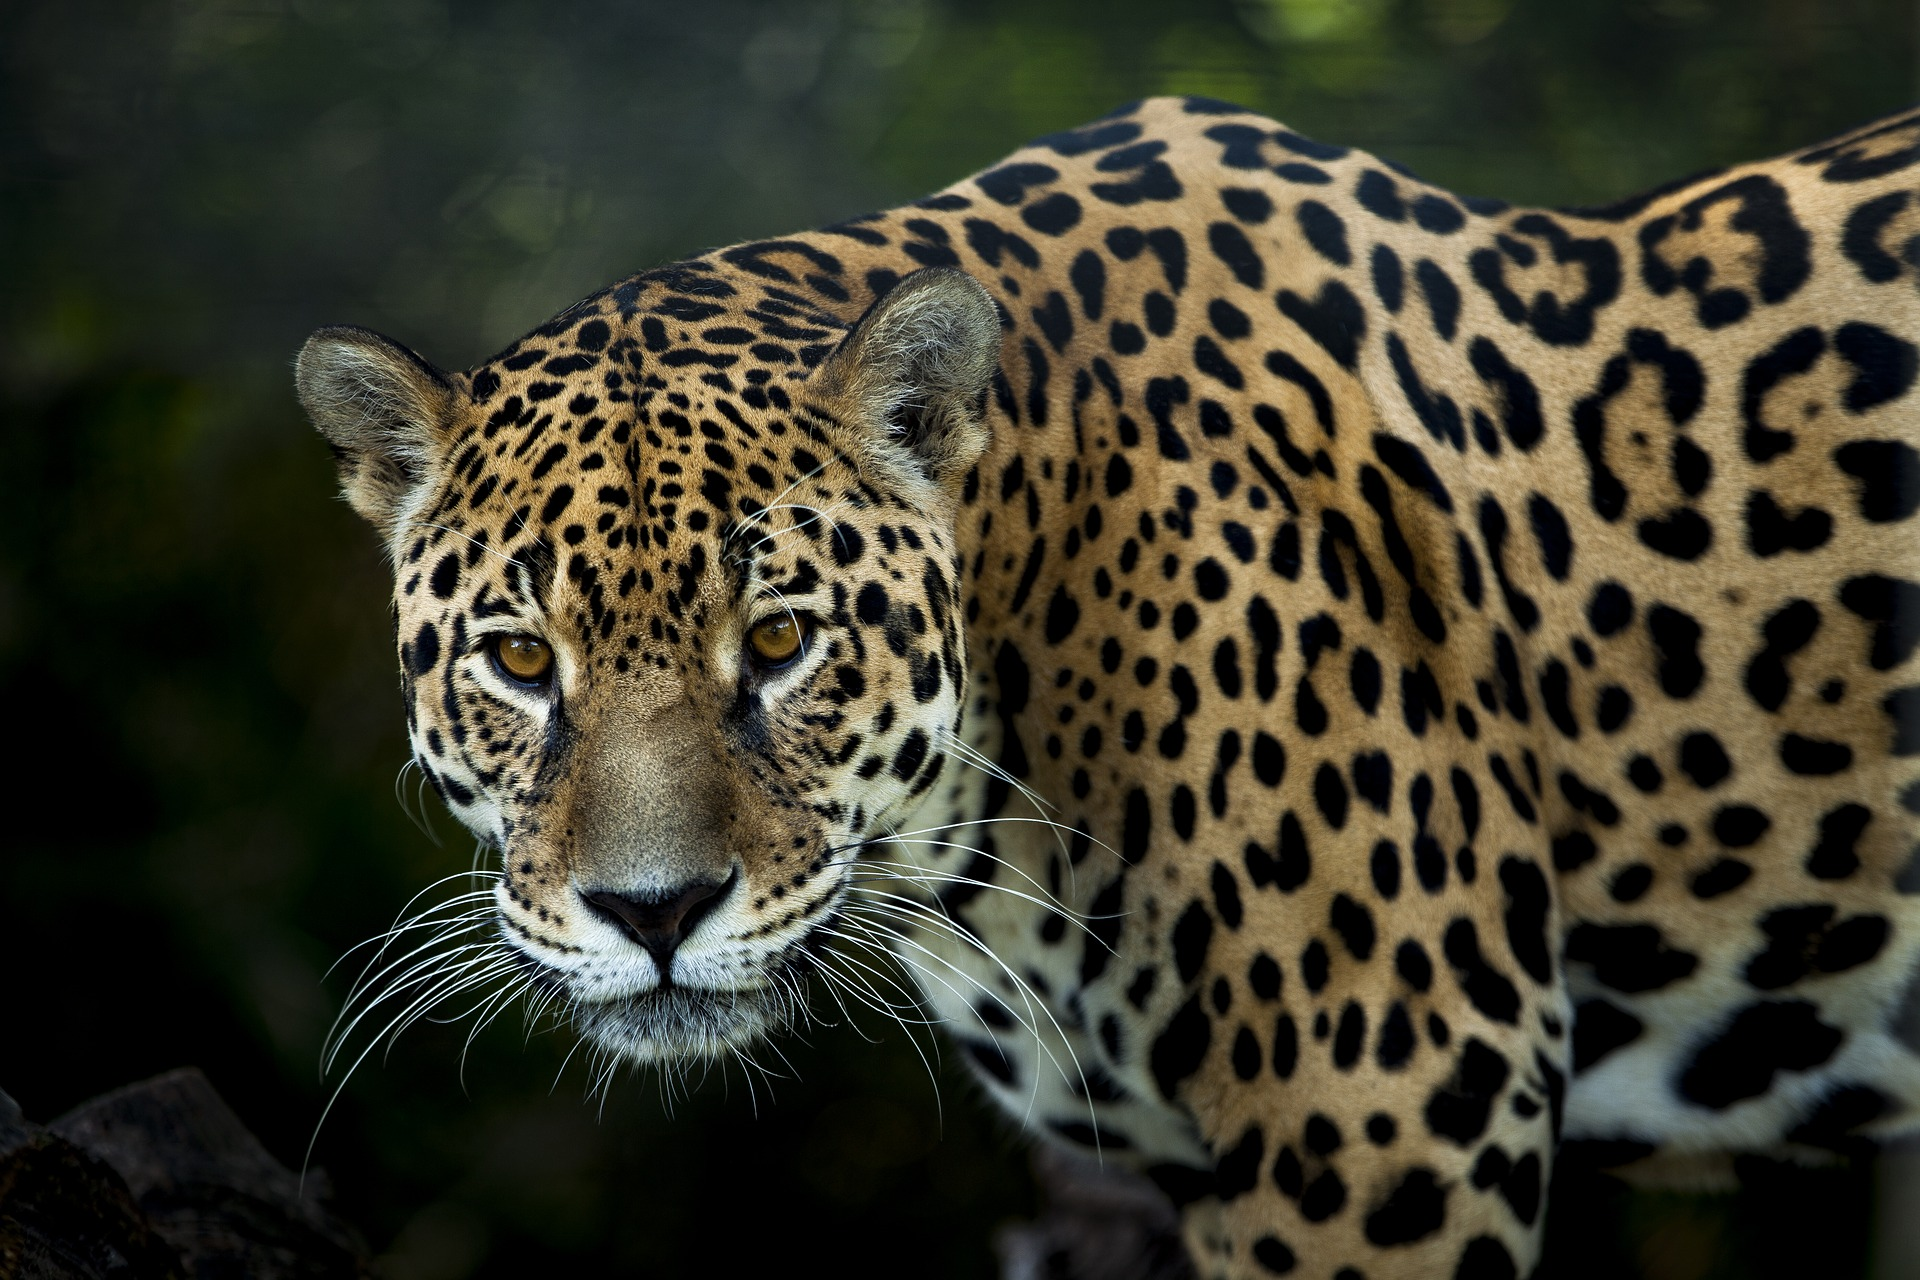 Pac-Man: The jaguar hunted for parts in Mexico